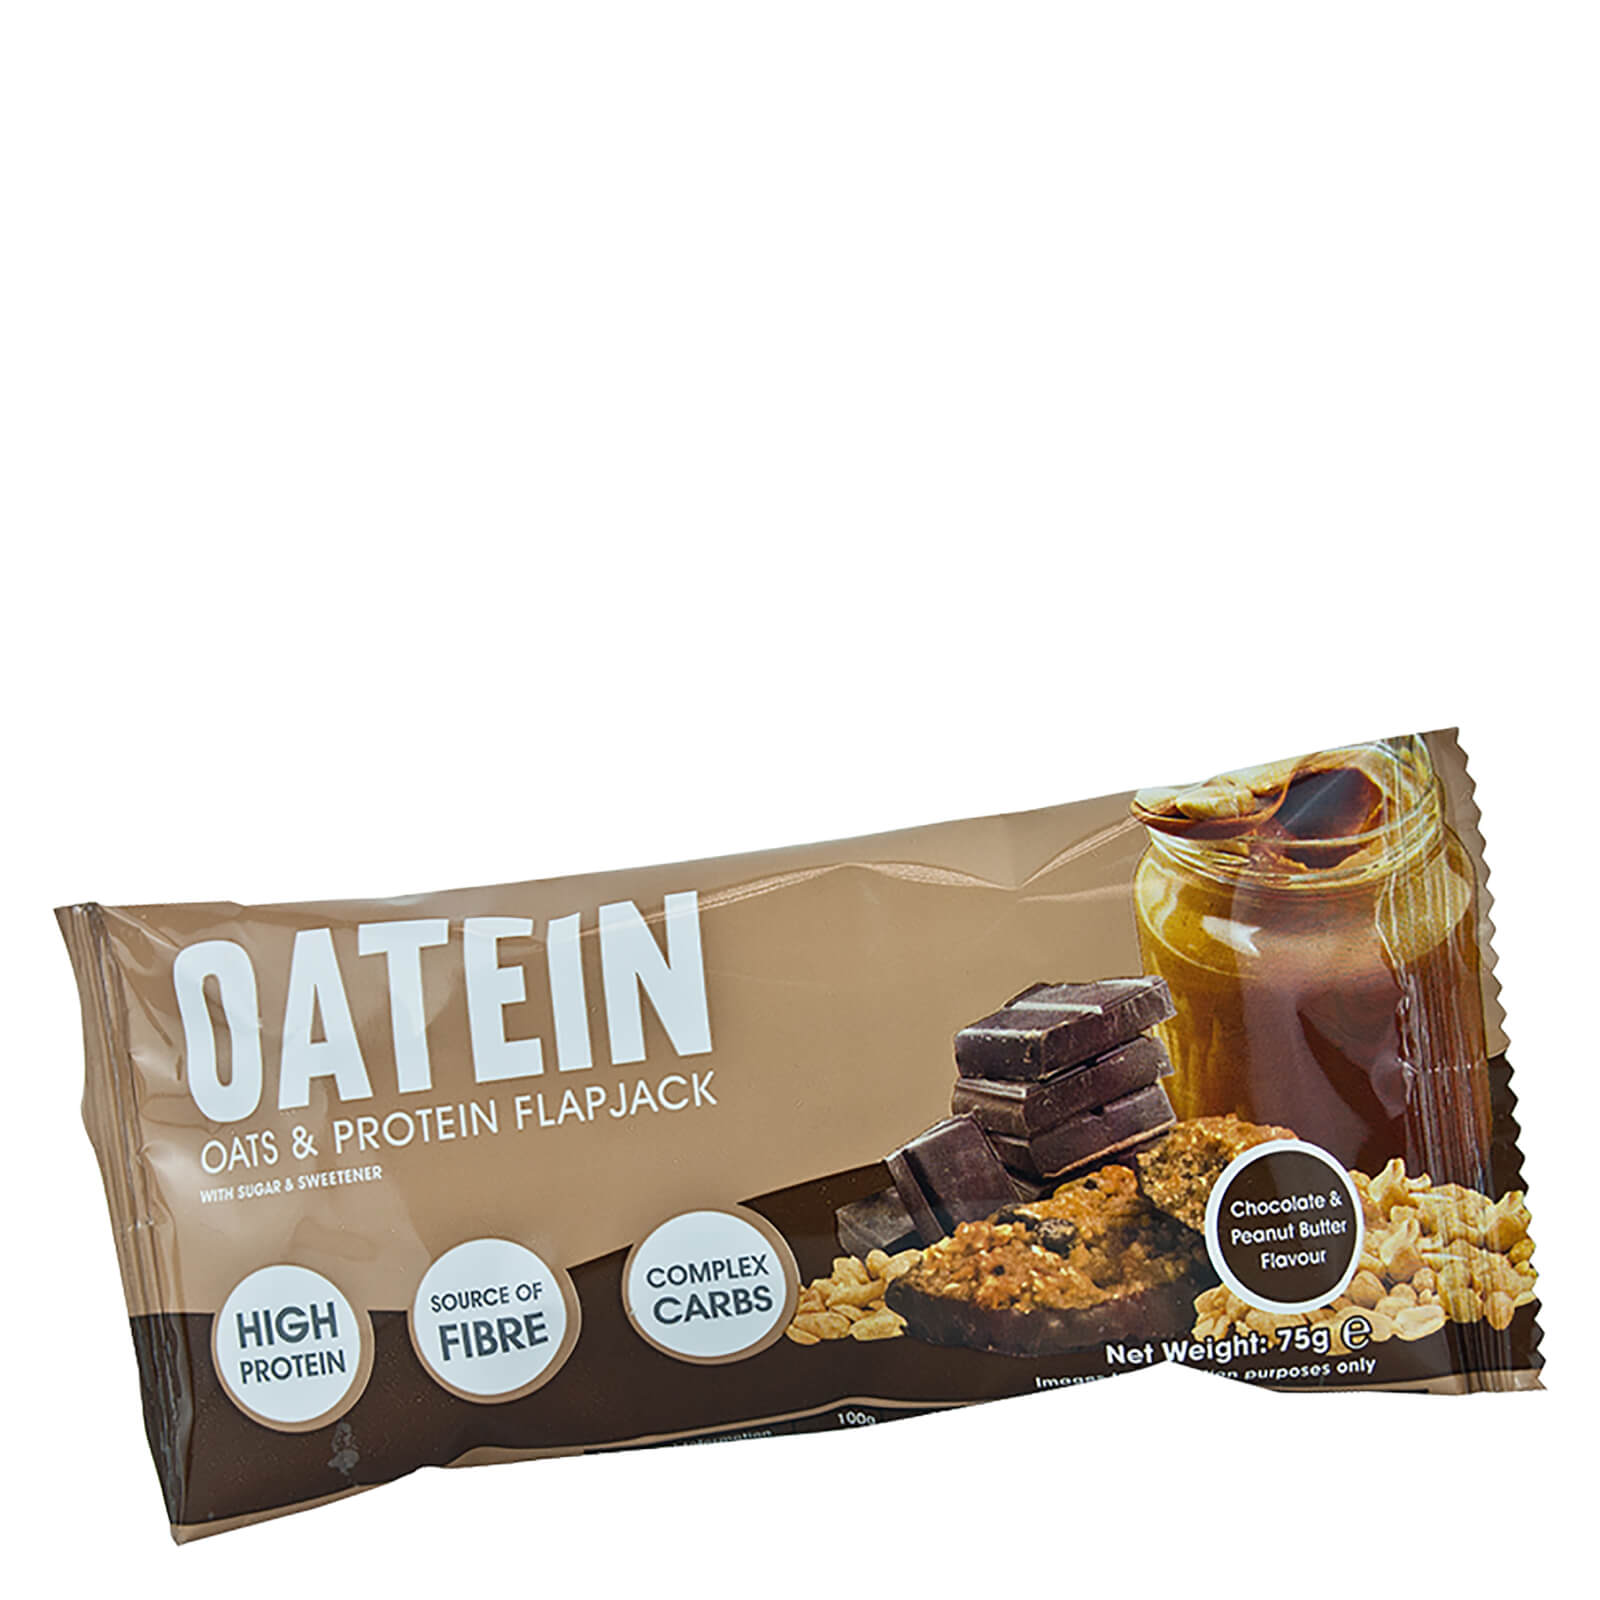 Oatein Chocolate Peanut Butter Flapjack Bar